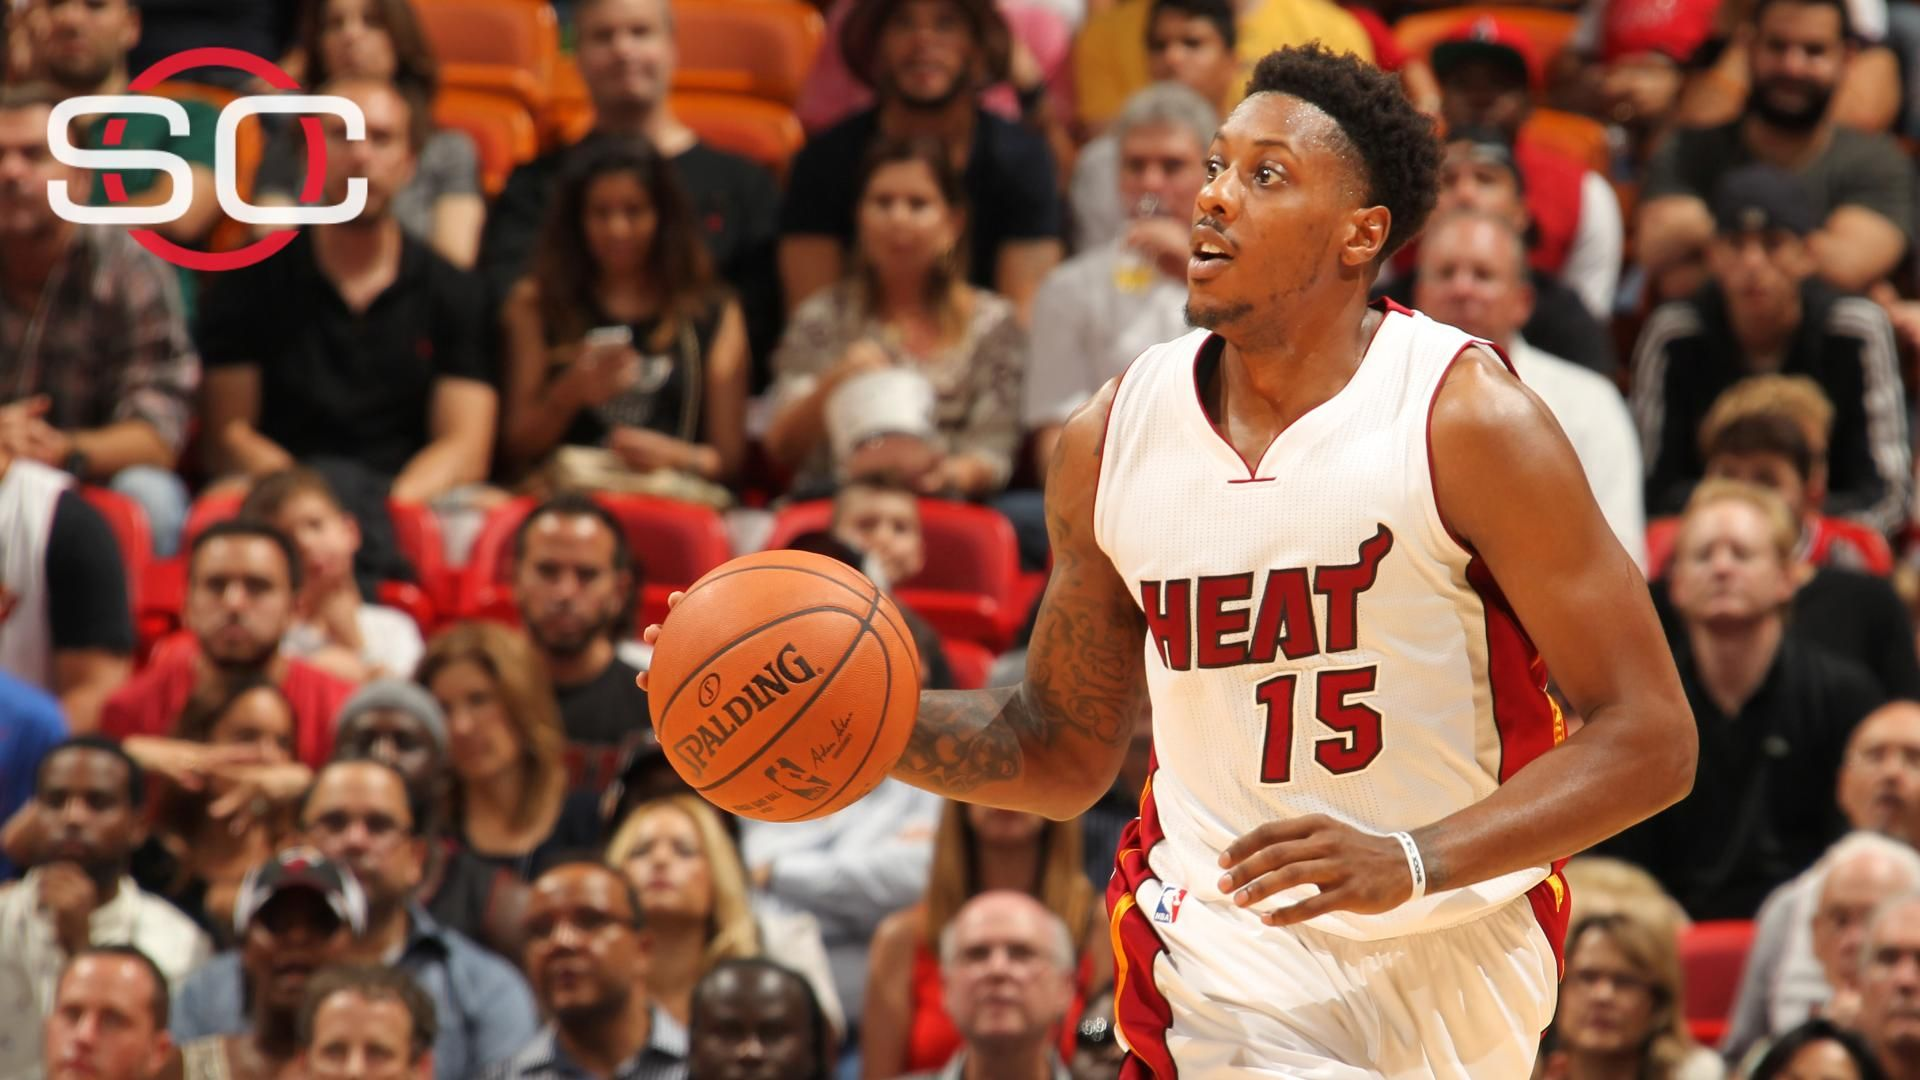 https://secure.espncdn.com/combiner/i?img=/media/motion/2015/1110/dm_151110_nba_chalmers_trade/dm_151110_nba_chalmers_trade.jpg